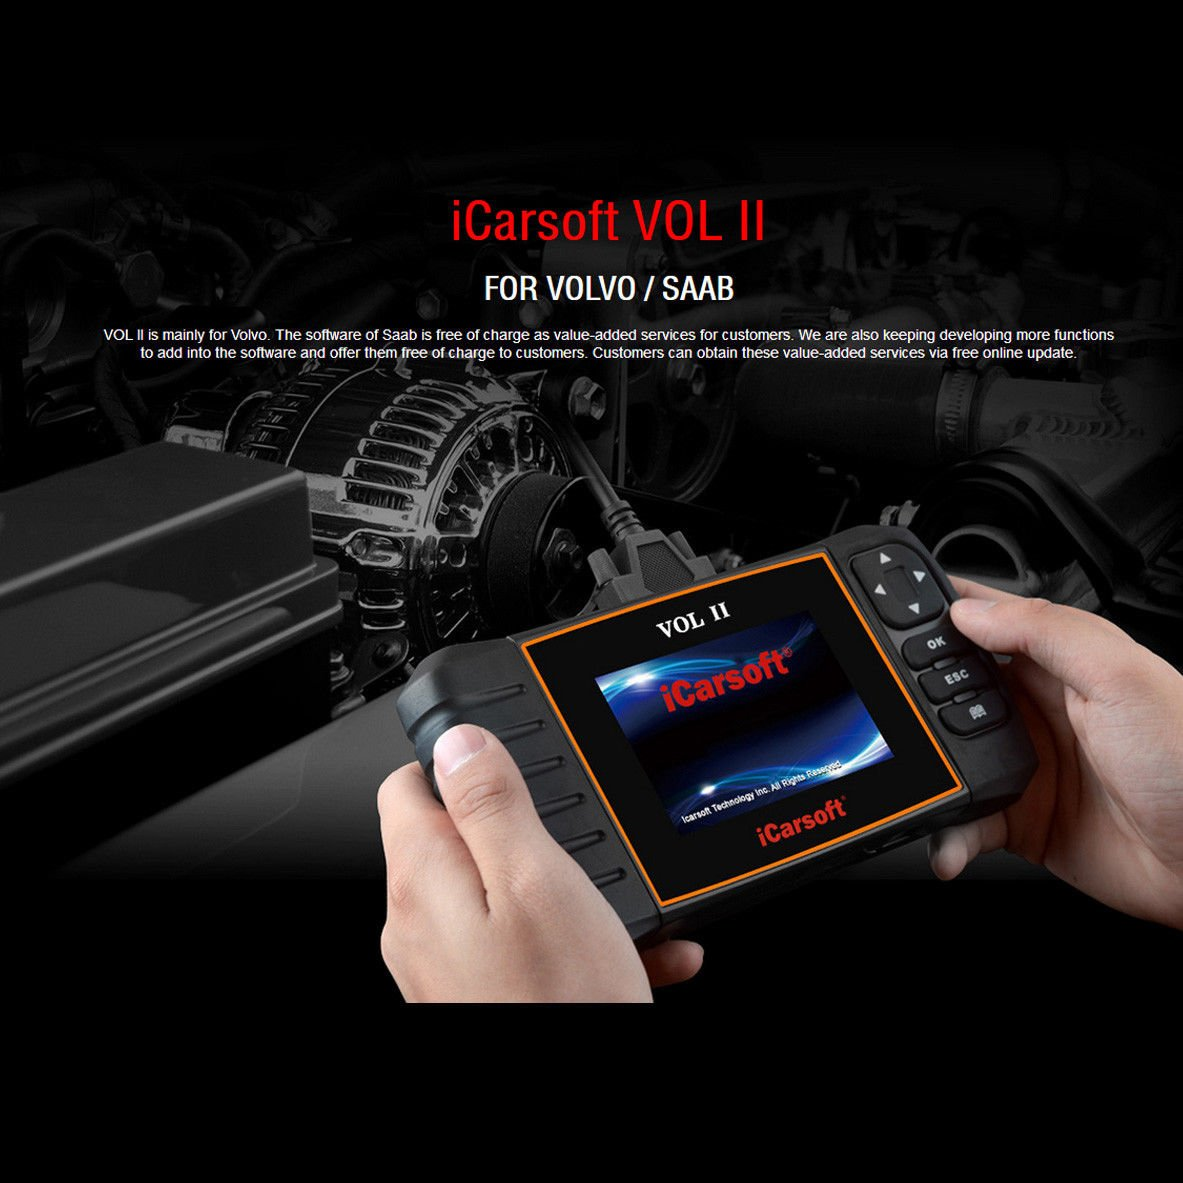 iCarsoft VOL II OBDII diagnostic tool for Volvo Saab multi systems, SRS ABS Engine oil reset, EPB by iCarsoft (Image #1)